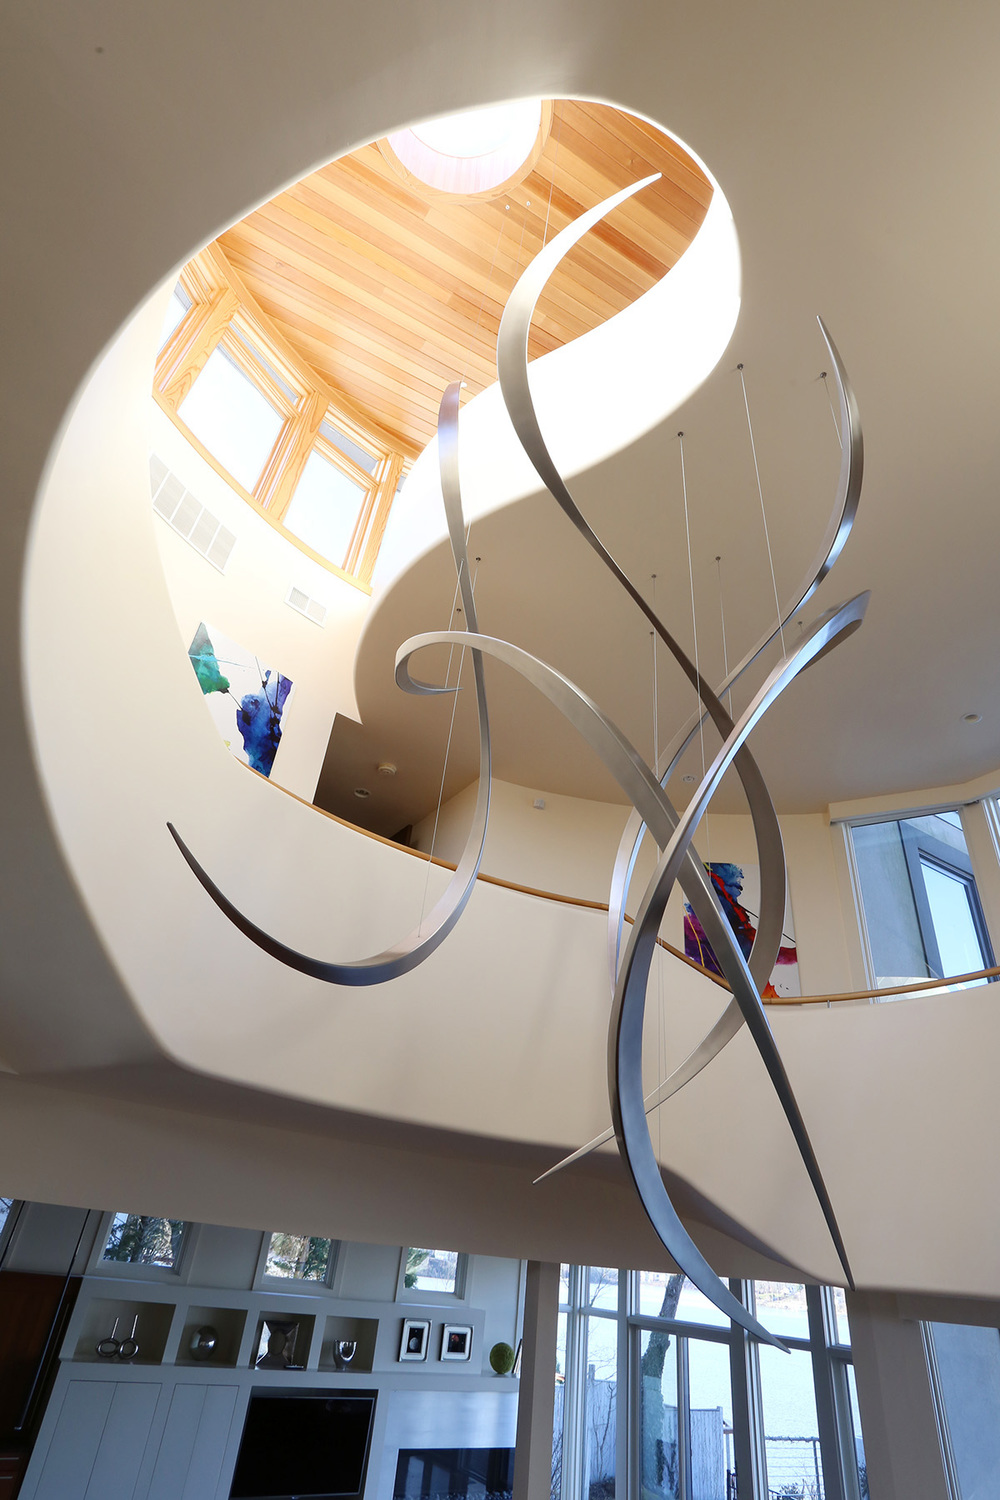 Tendrils , Stainless Steel, 13' x 9' x 7', 2016, Private Residence,Annapolis, MD